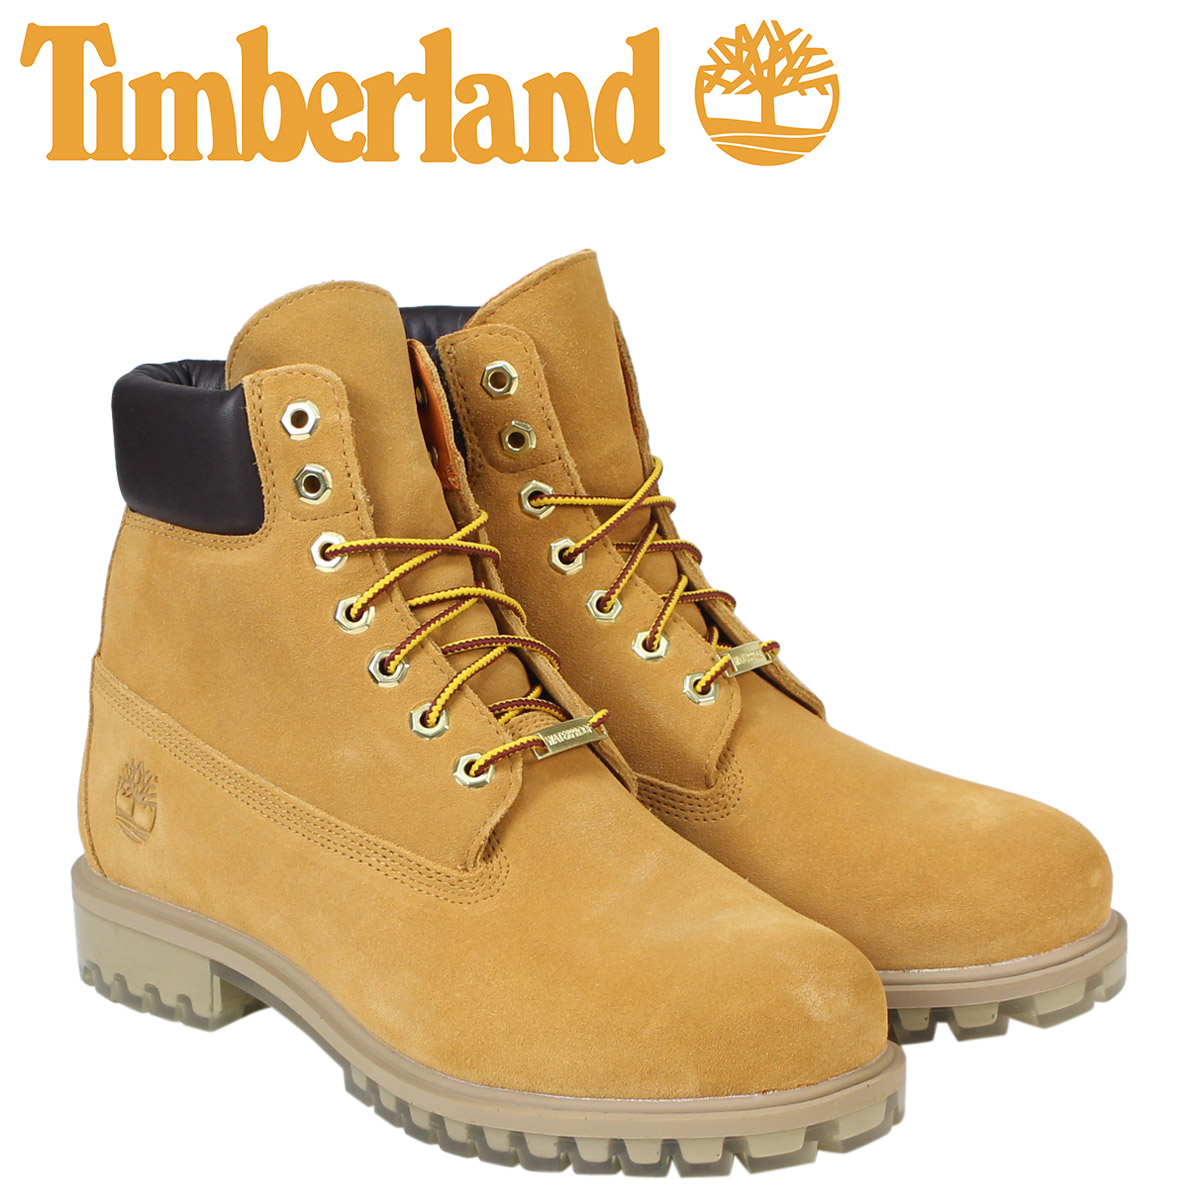 7cba2254b23 6 inches of Timberland boots men Timberland 6INCH PREMIUM SUEDE BOOT A1H6M  W Wise waterproofing ウィート